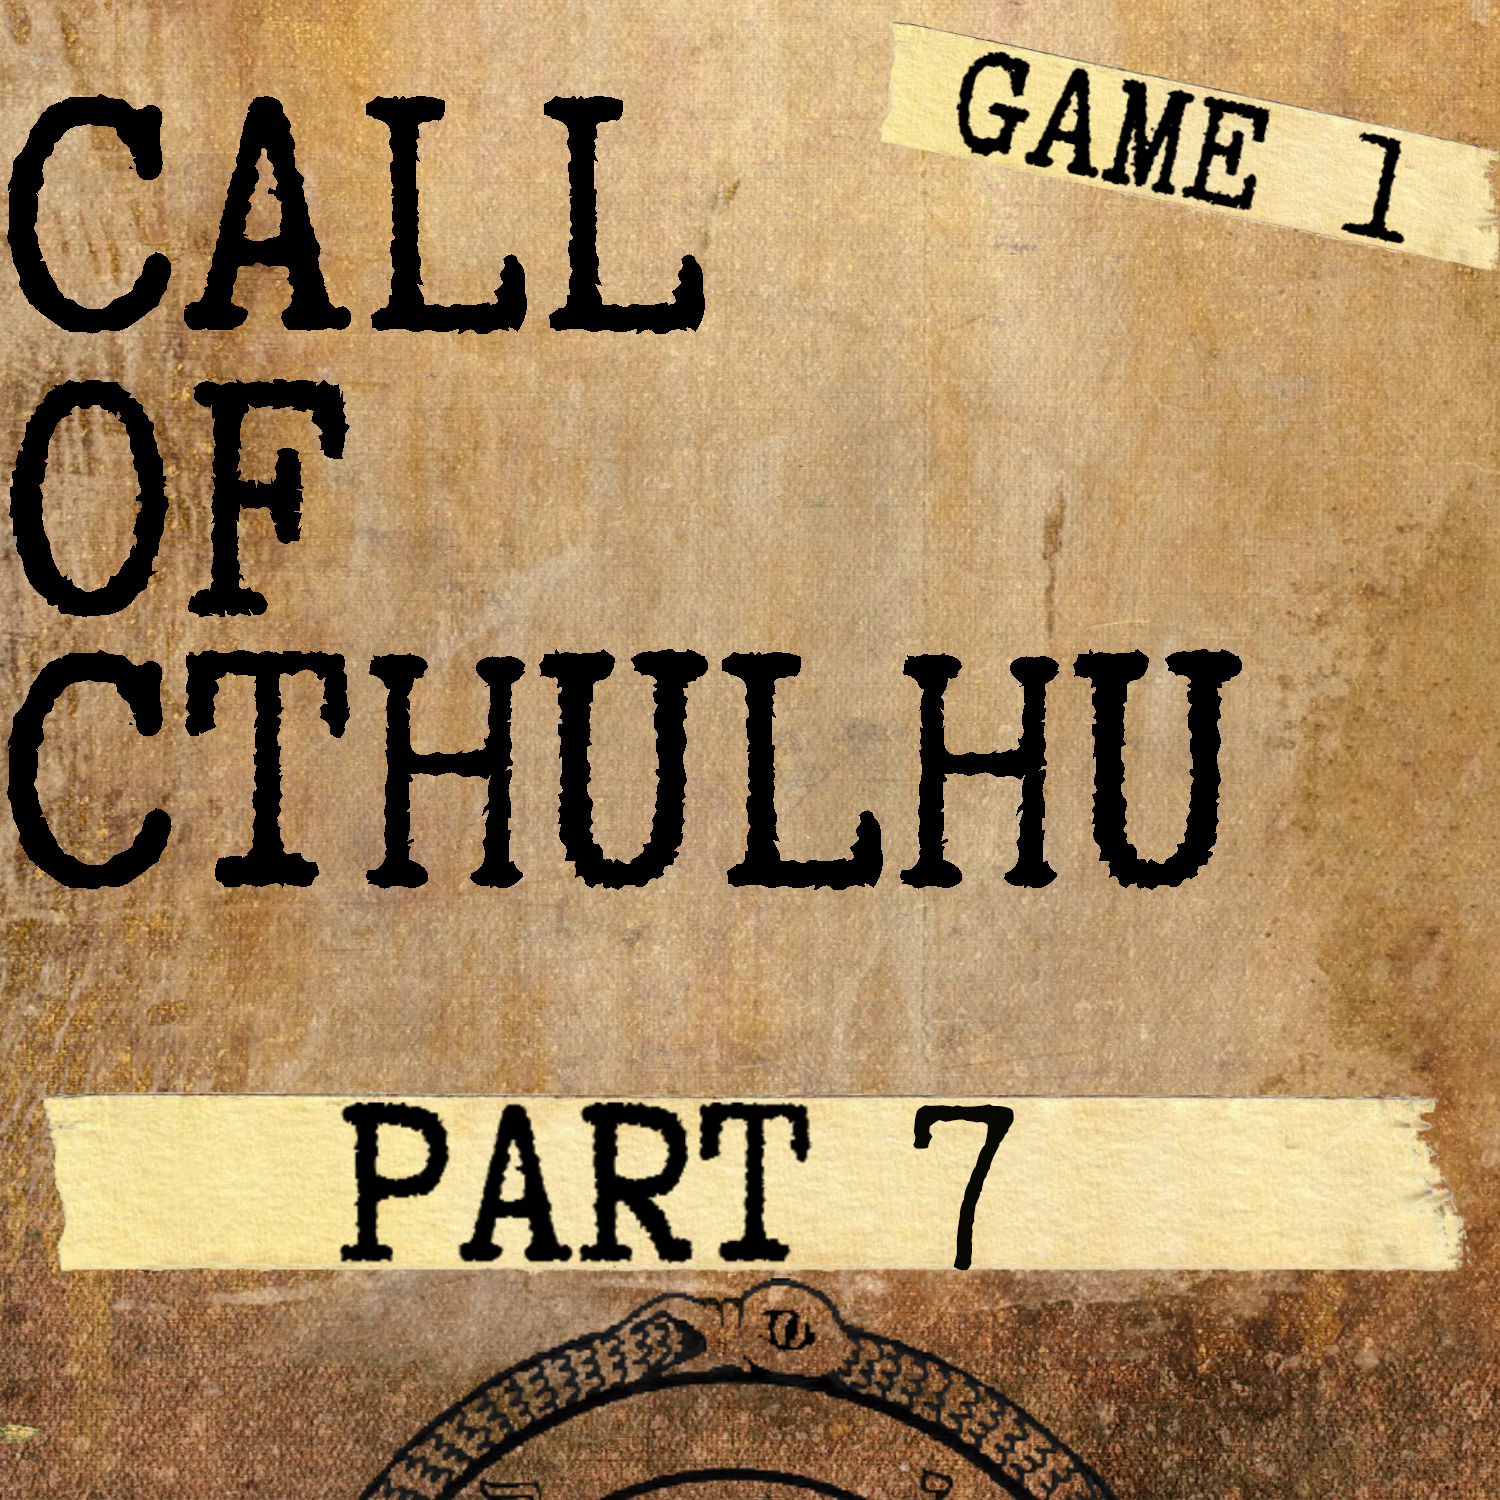 Artwork for Call of Cthulhu - Game 1: Part 7